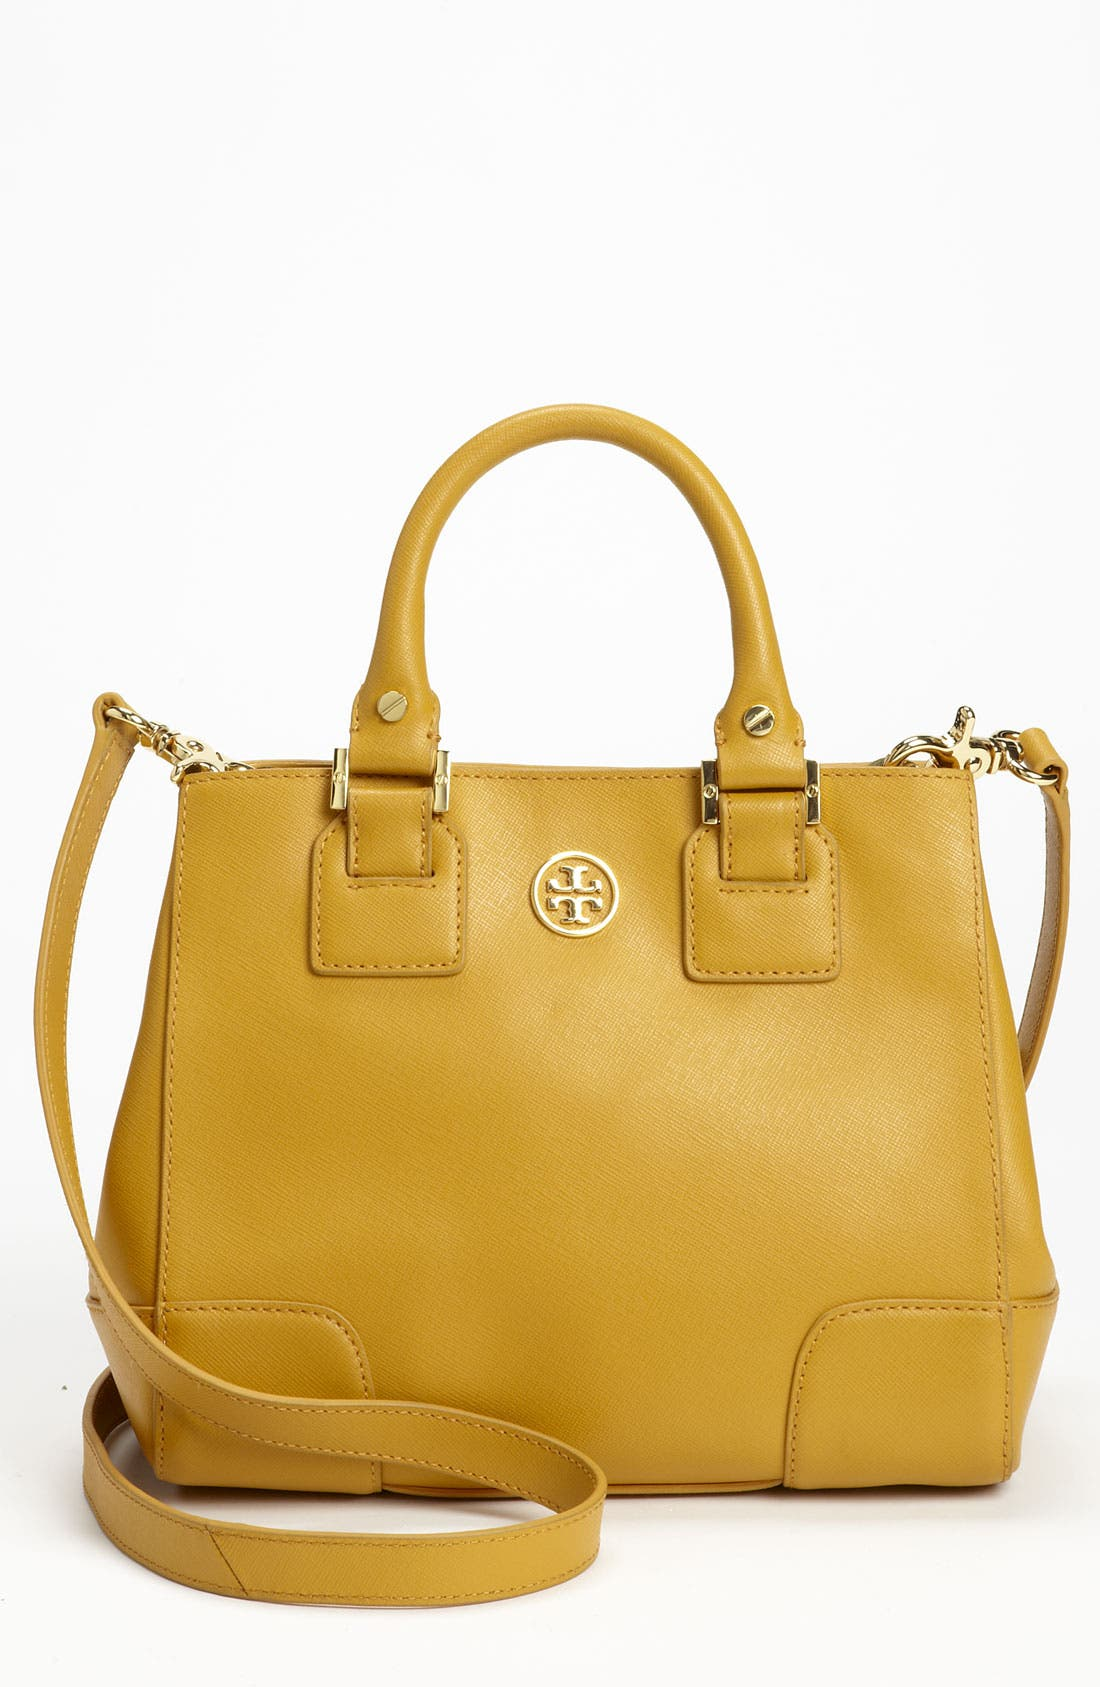 Main Image - Tory Burch 'Square - Mini' Tote